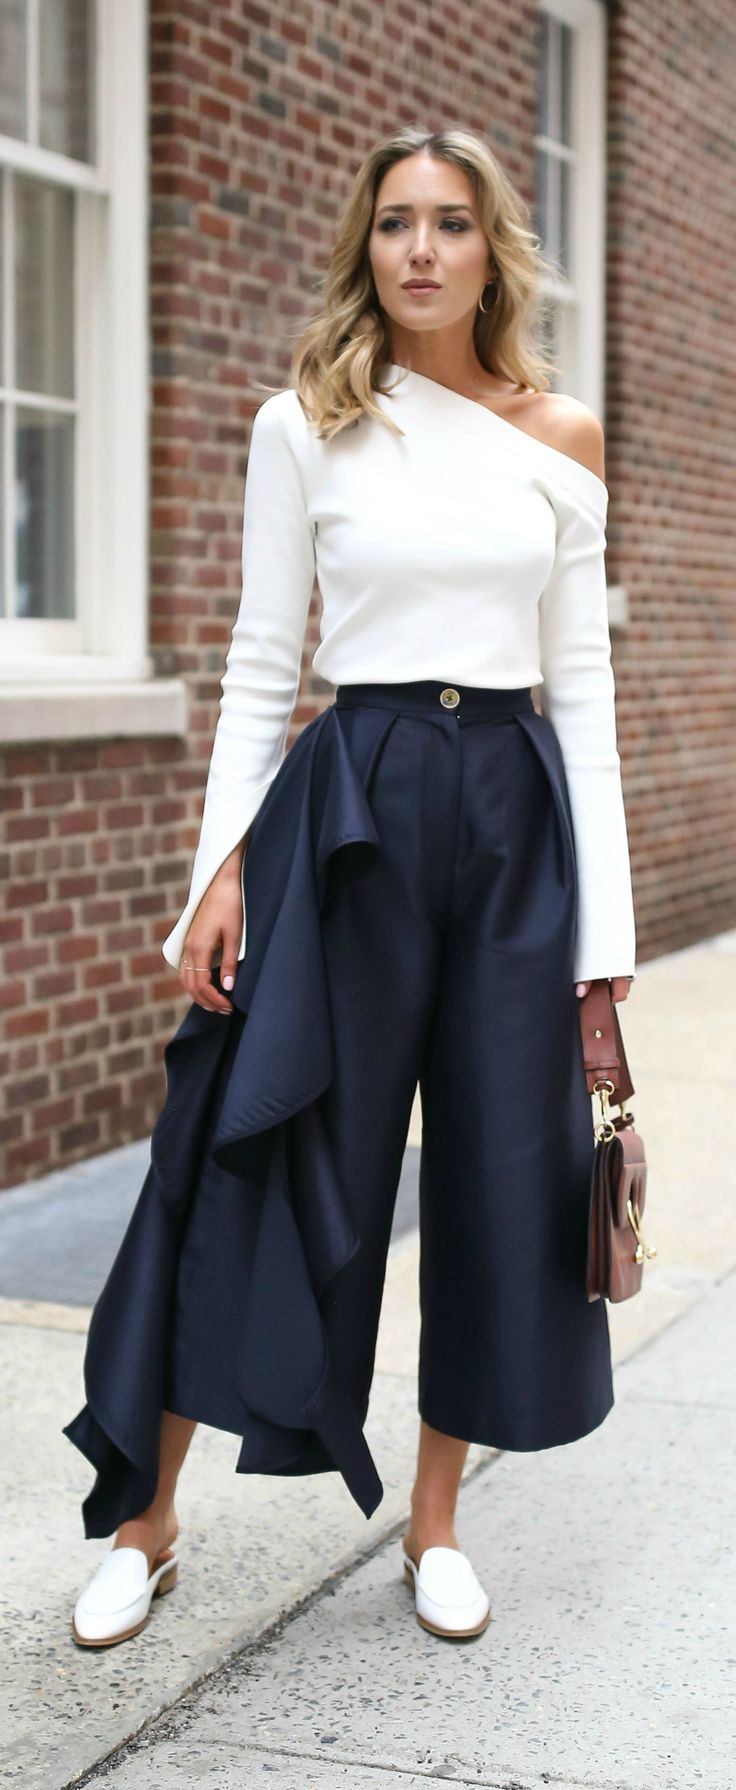 ivory one shoulder long sleeve top, navy culottes with ruffles down leg, white mules slides, brown pierce bag {solace london, net-a-porter, everlane, j.w. anderson} In all love love this style